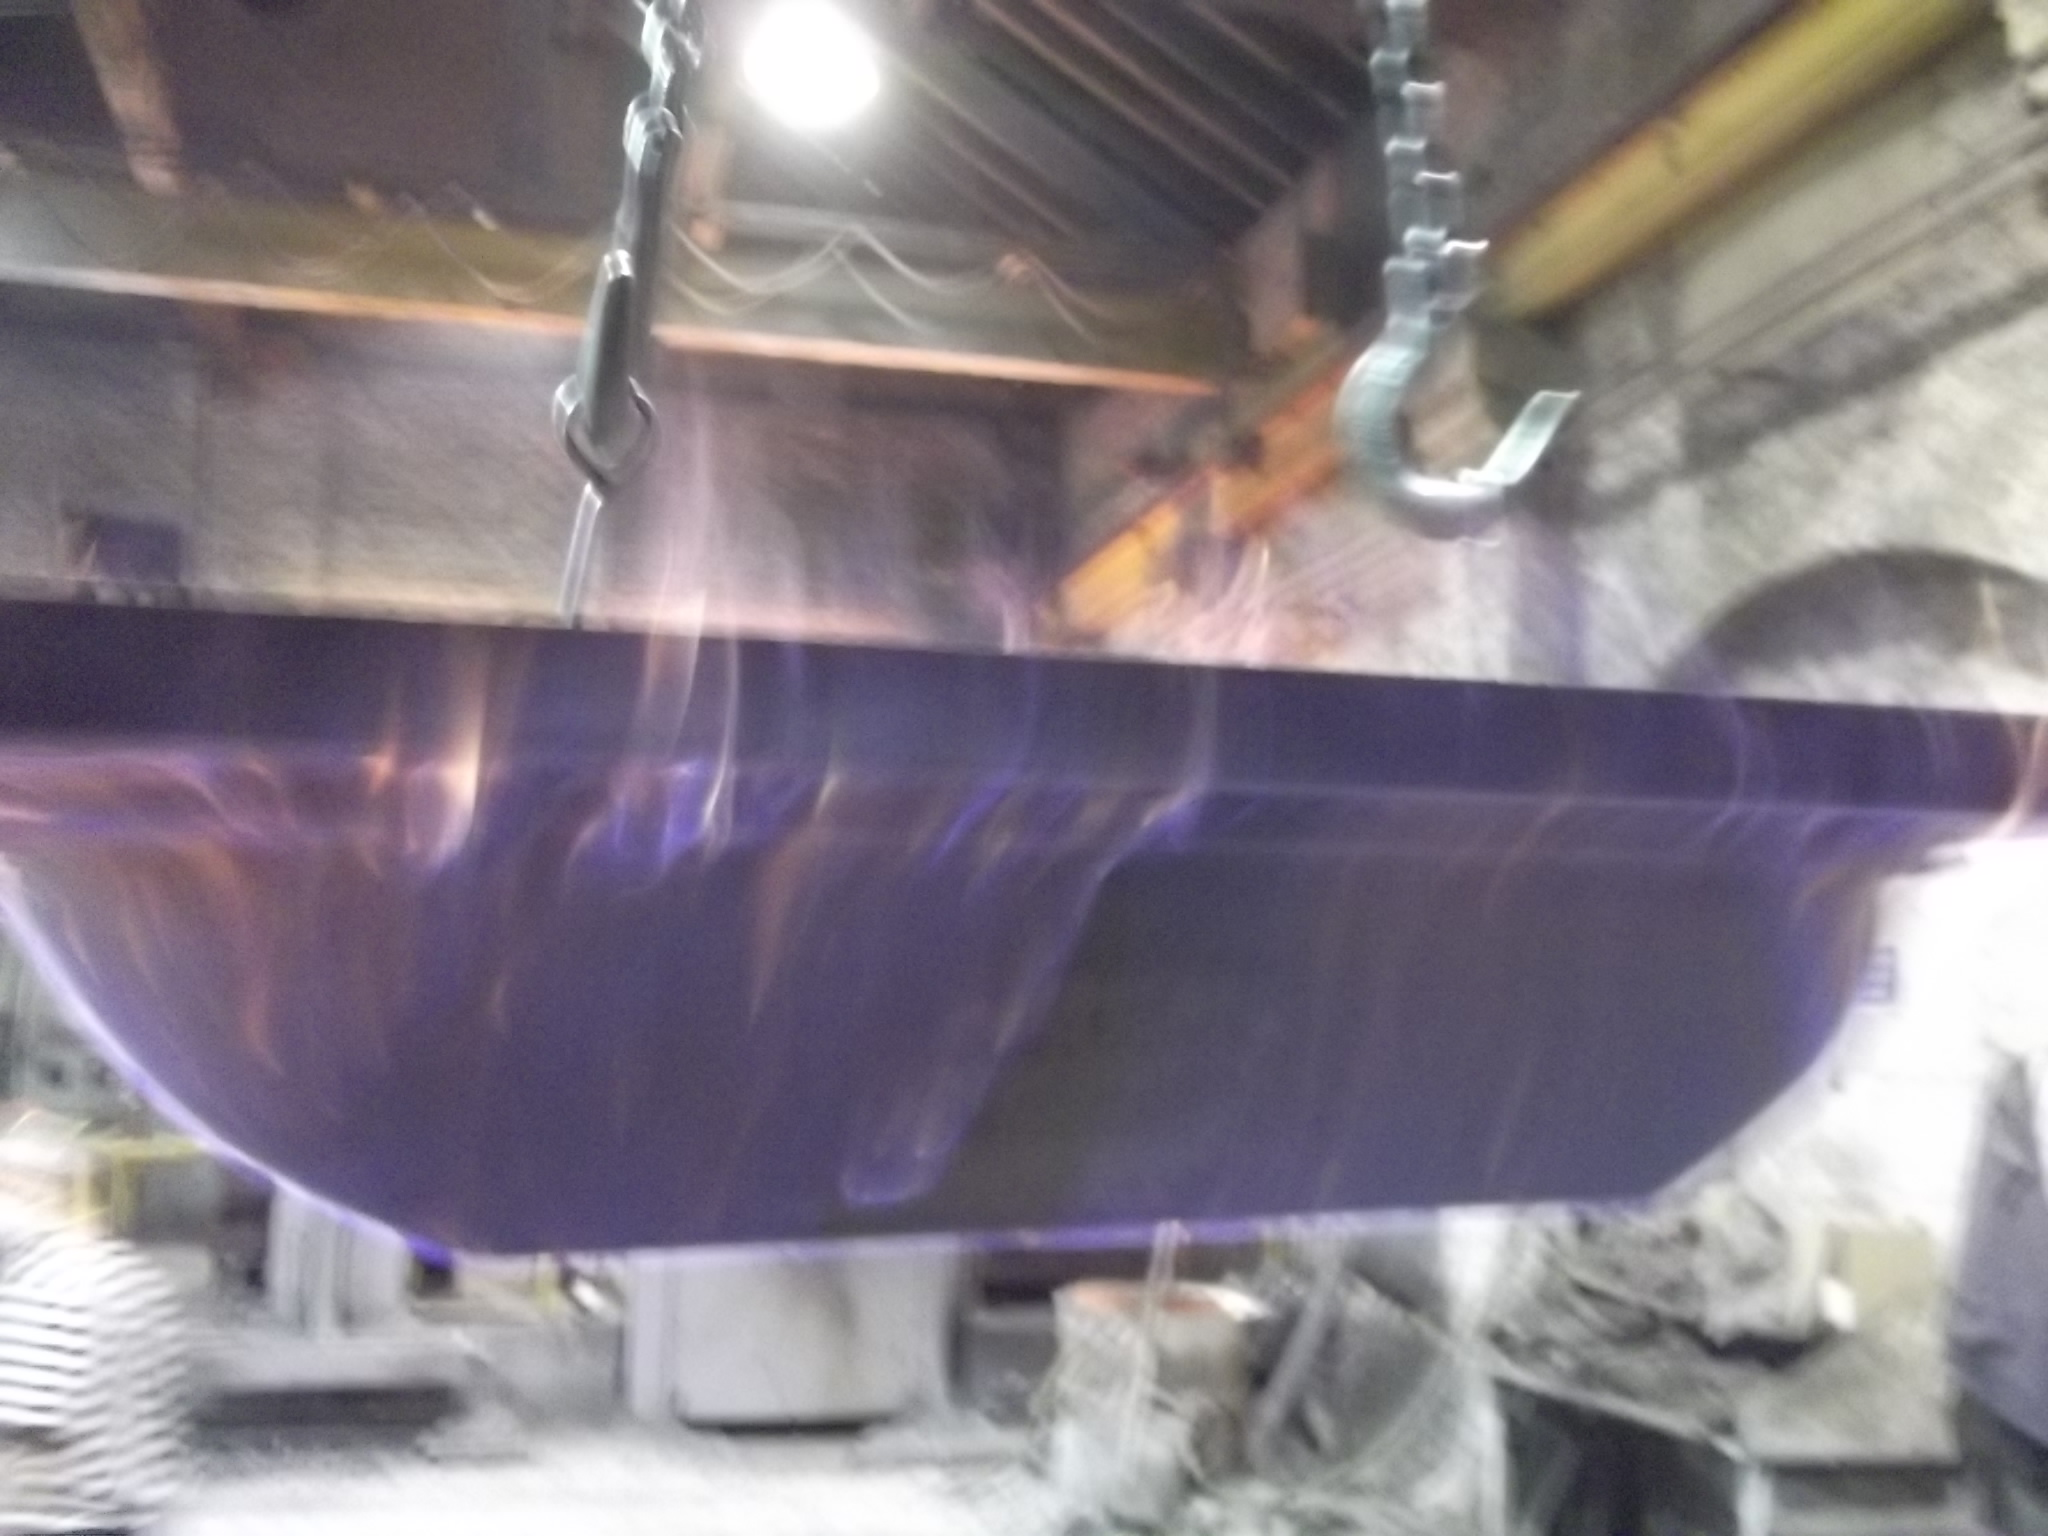 Heating mould for casting